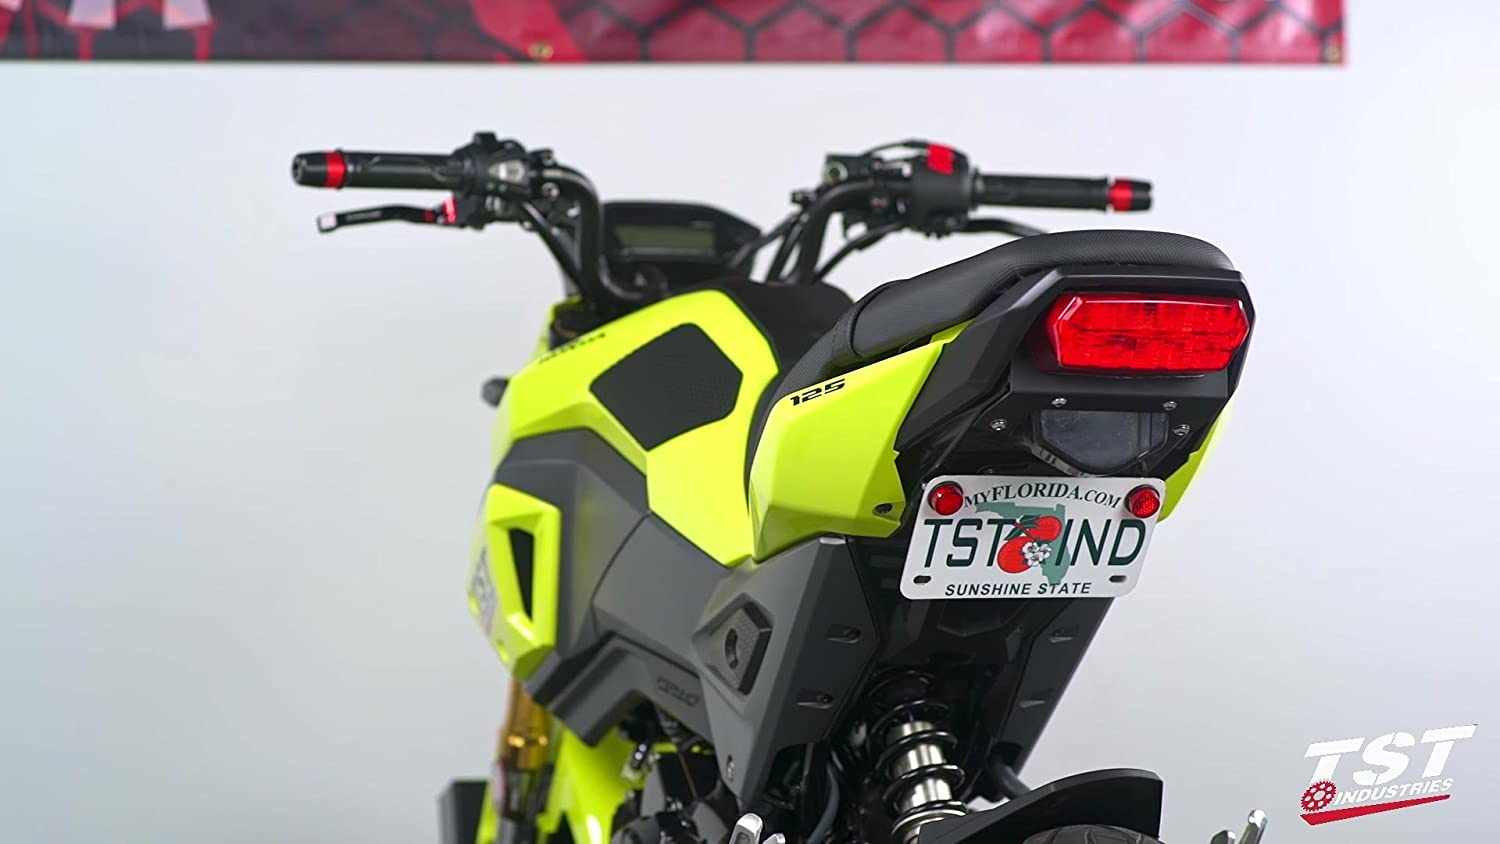 motorcycle fit for the OEM# VM-HG710 and aftermarket blinkers Motorsports Fender Eliminator license plate mount Compatible with the Honda Grom//MSX125 2017 iFJF